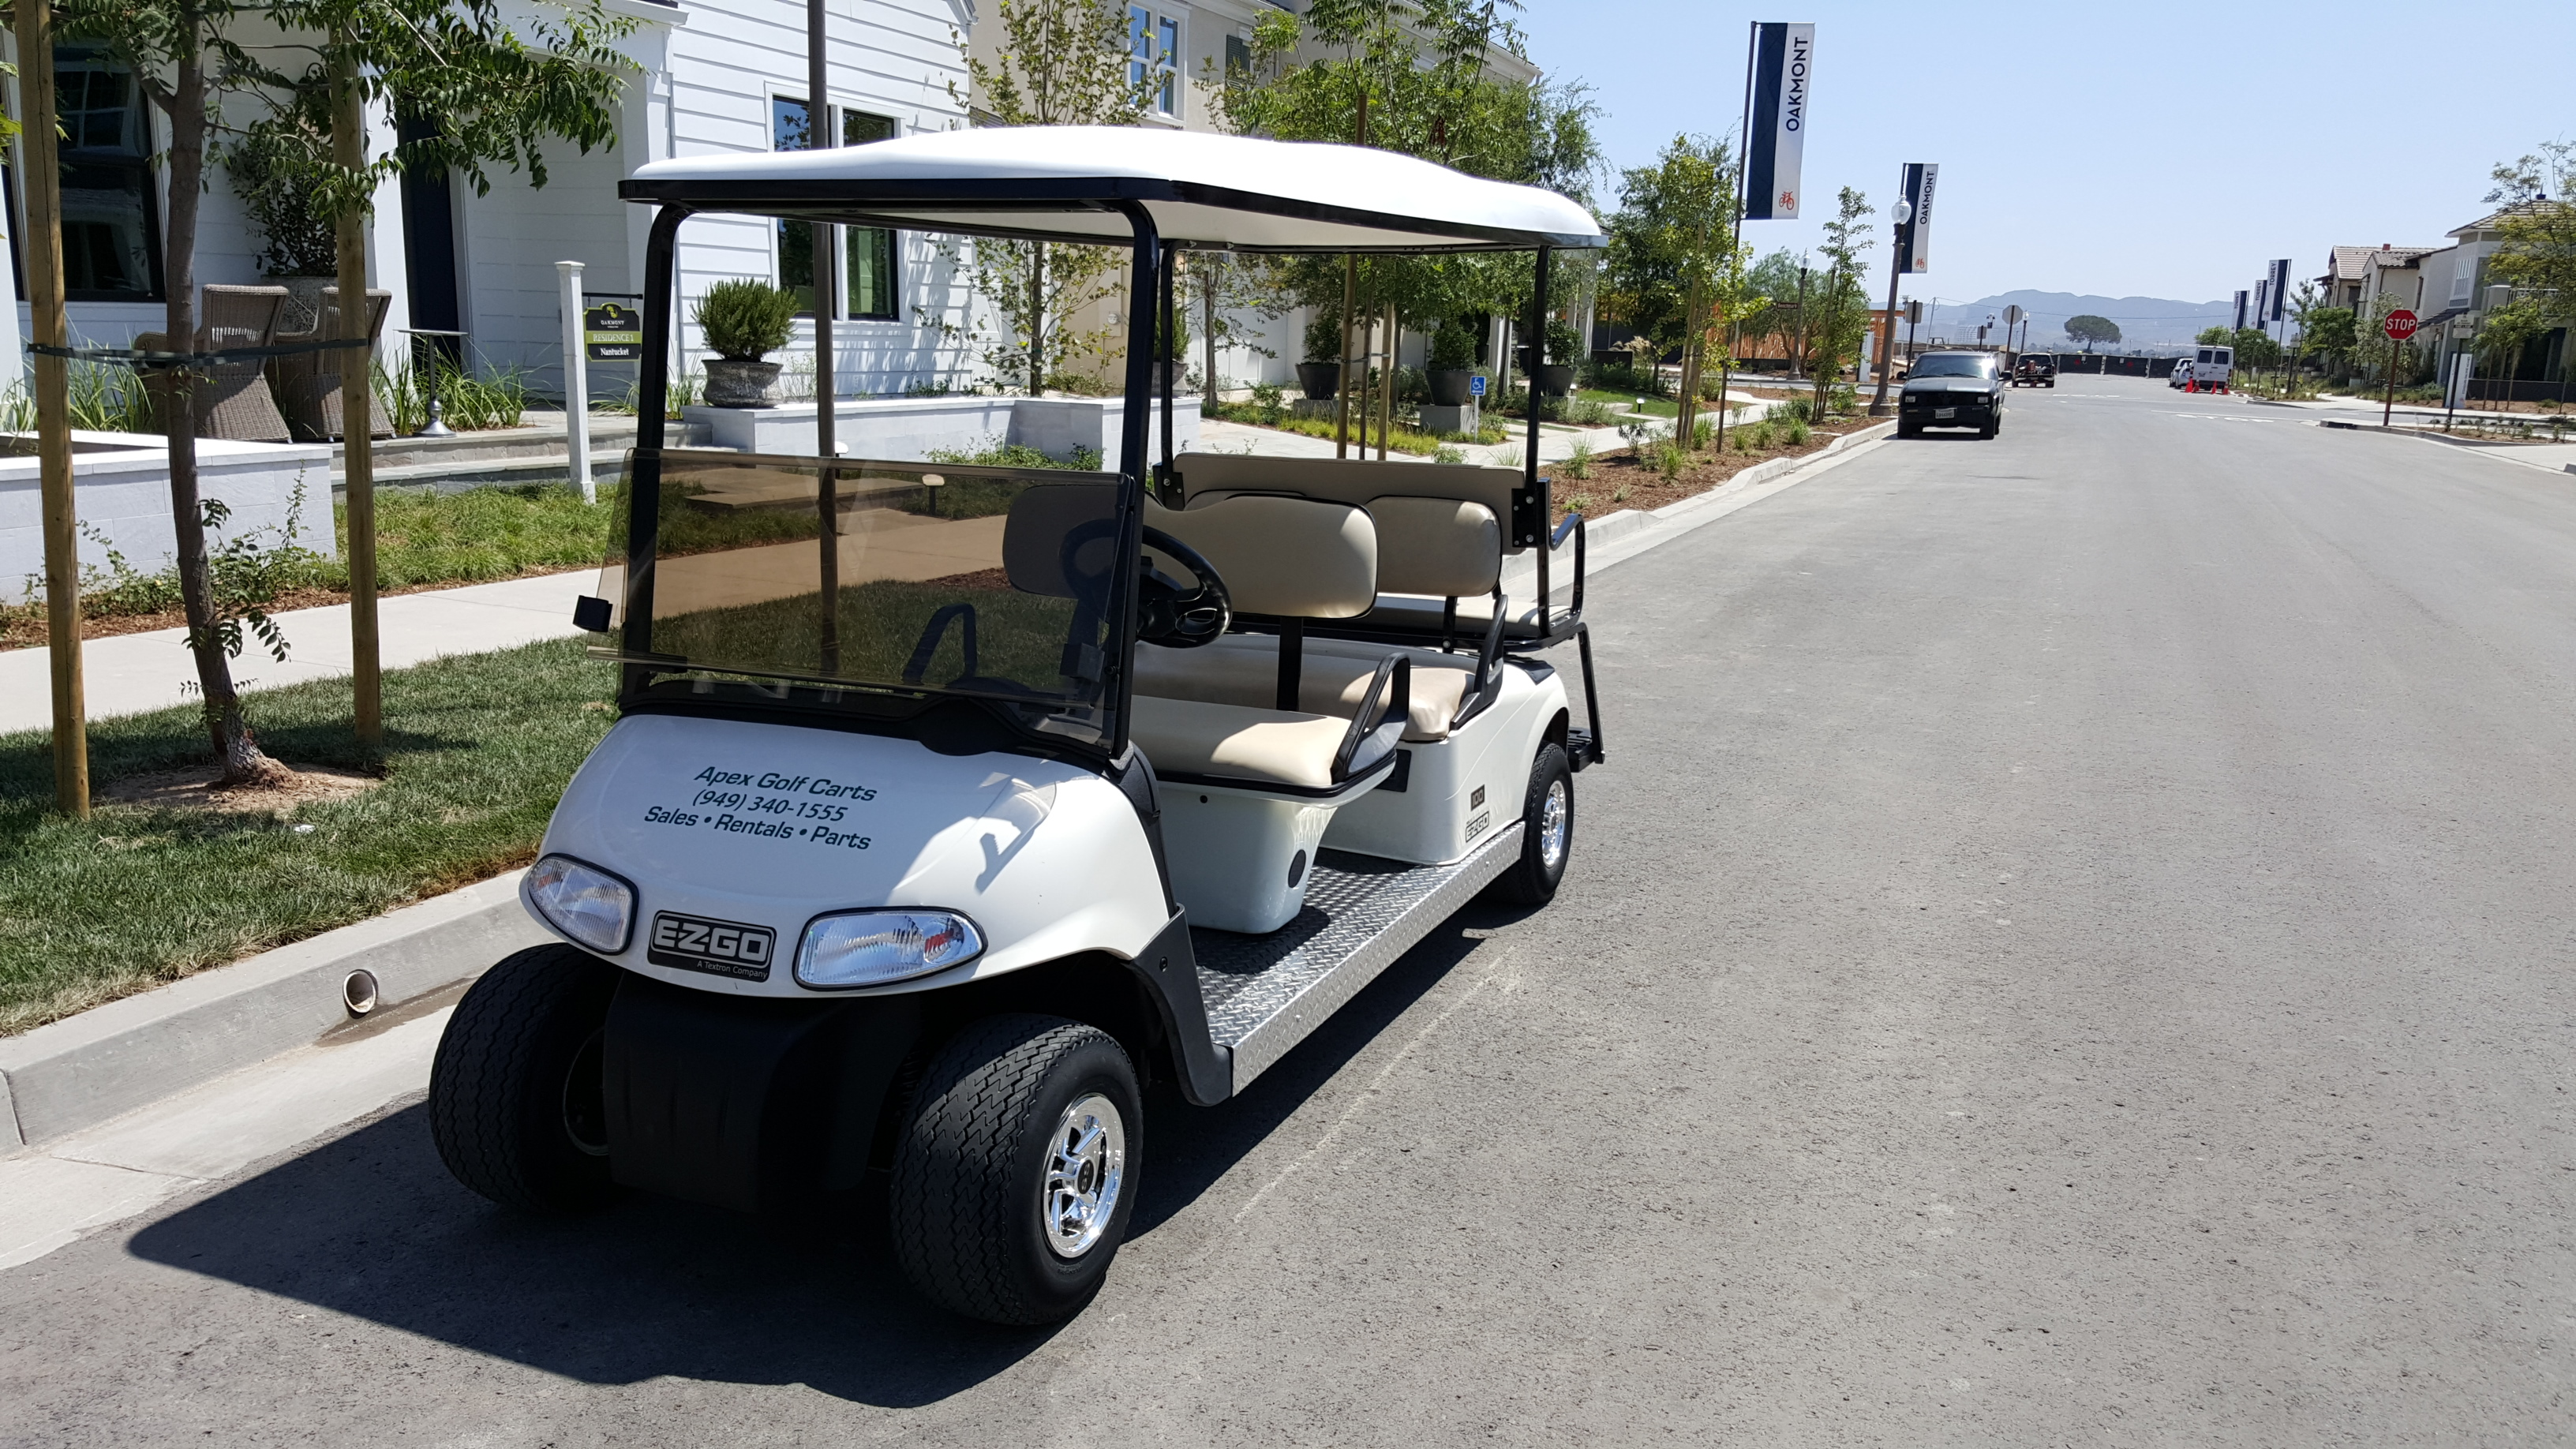 6 Passenger Golf Cart Rentals in Orange County, CA